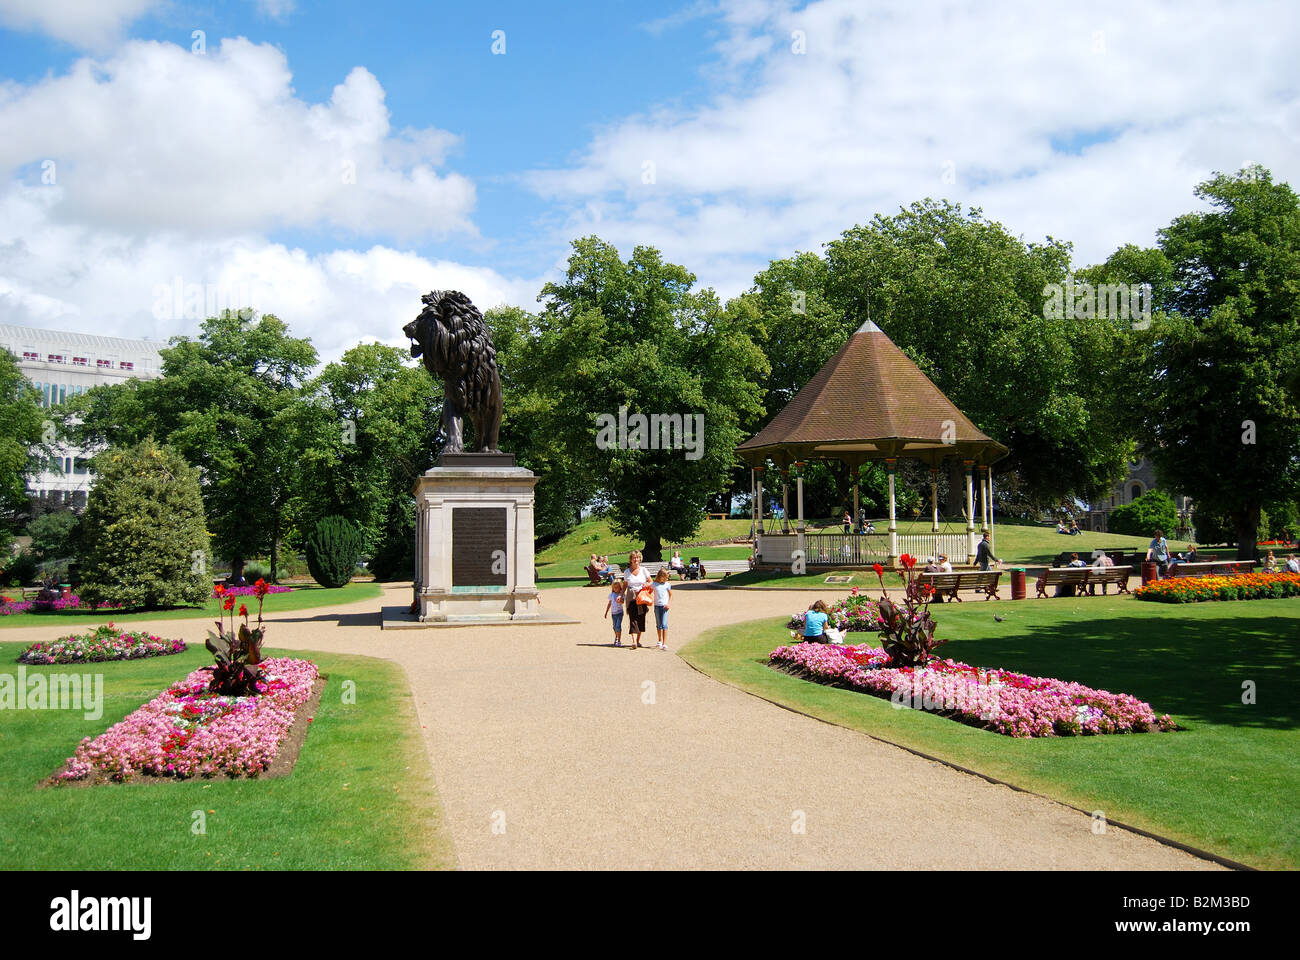 Gardens and bandstand, Forbury Gardens, Reading, Berkshire, England, United Kingdom Stock Photo